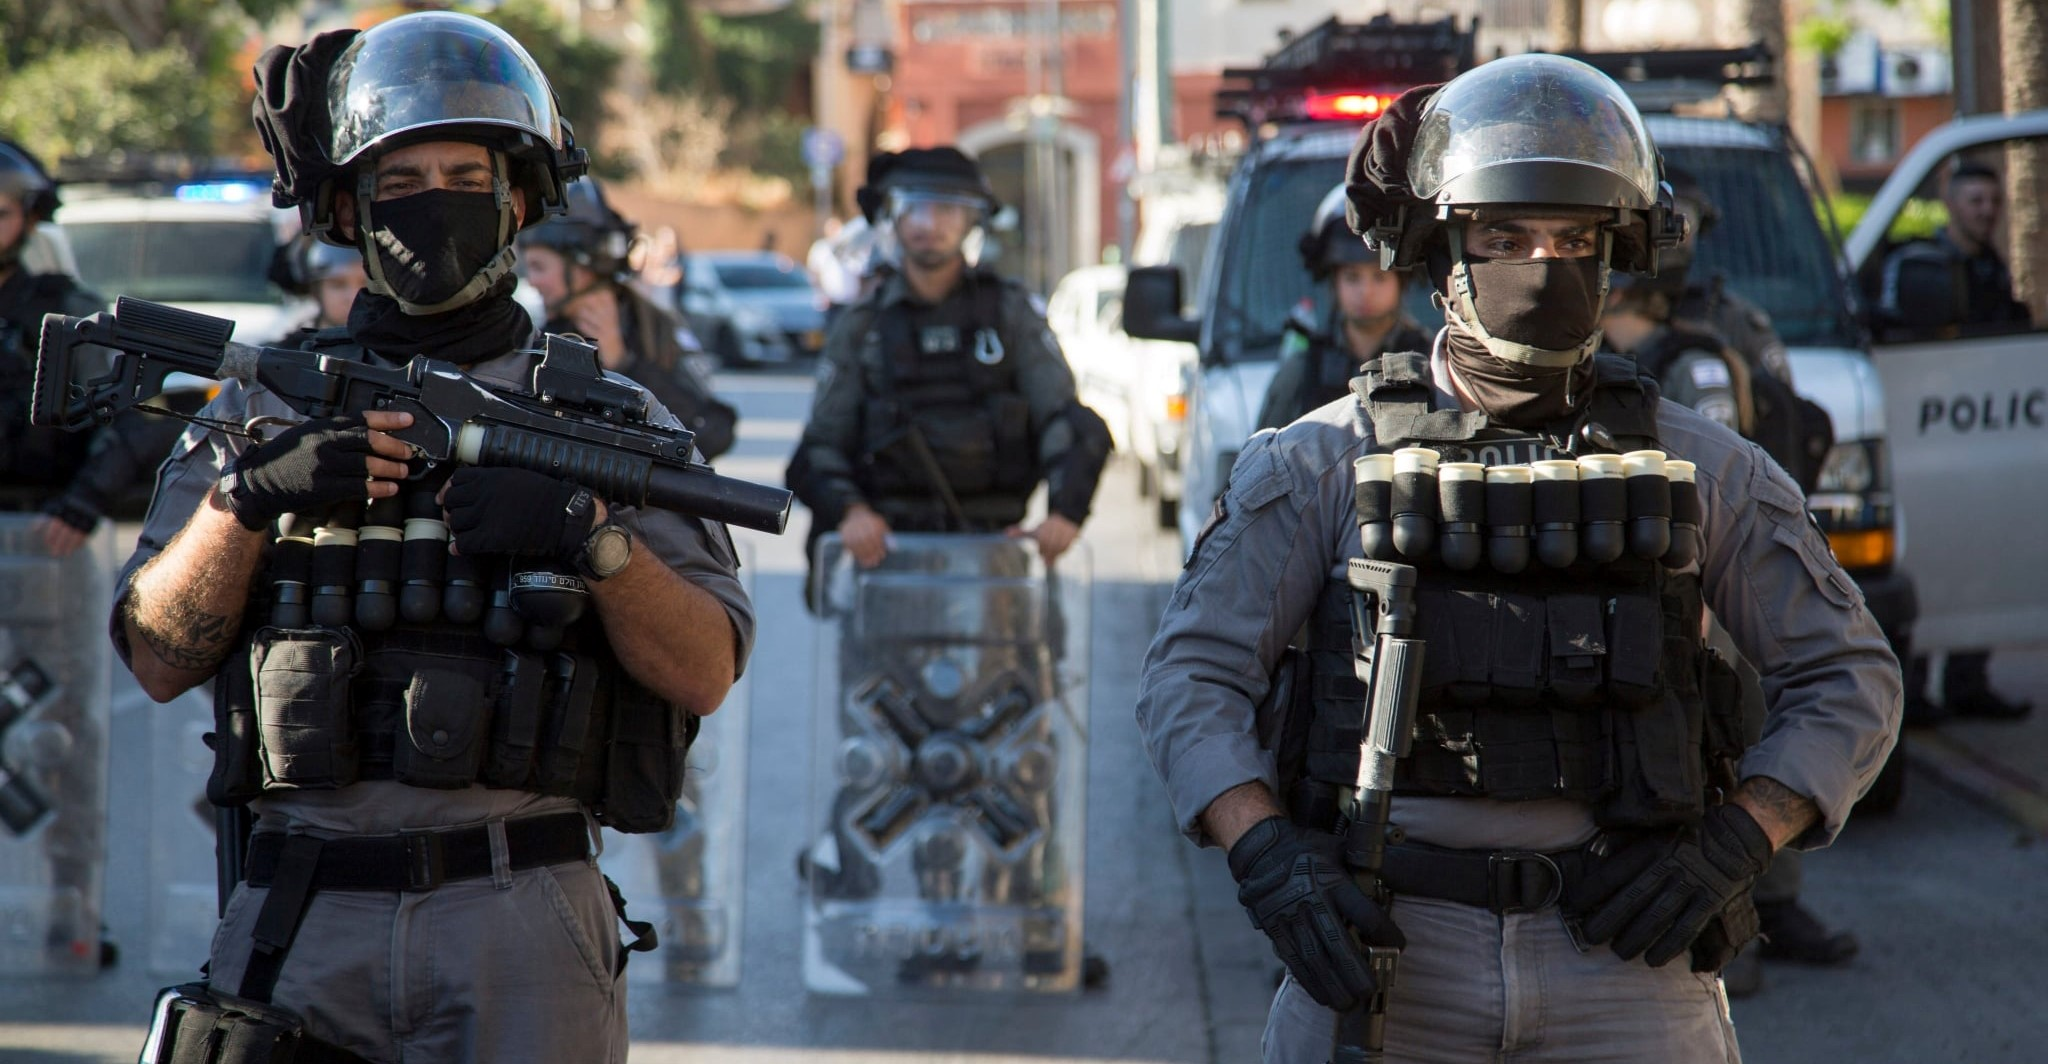 Israel's highly militarized police stand ready to confront protesters in the streets of Arab Jaffa, May 21, 2021.